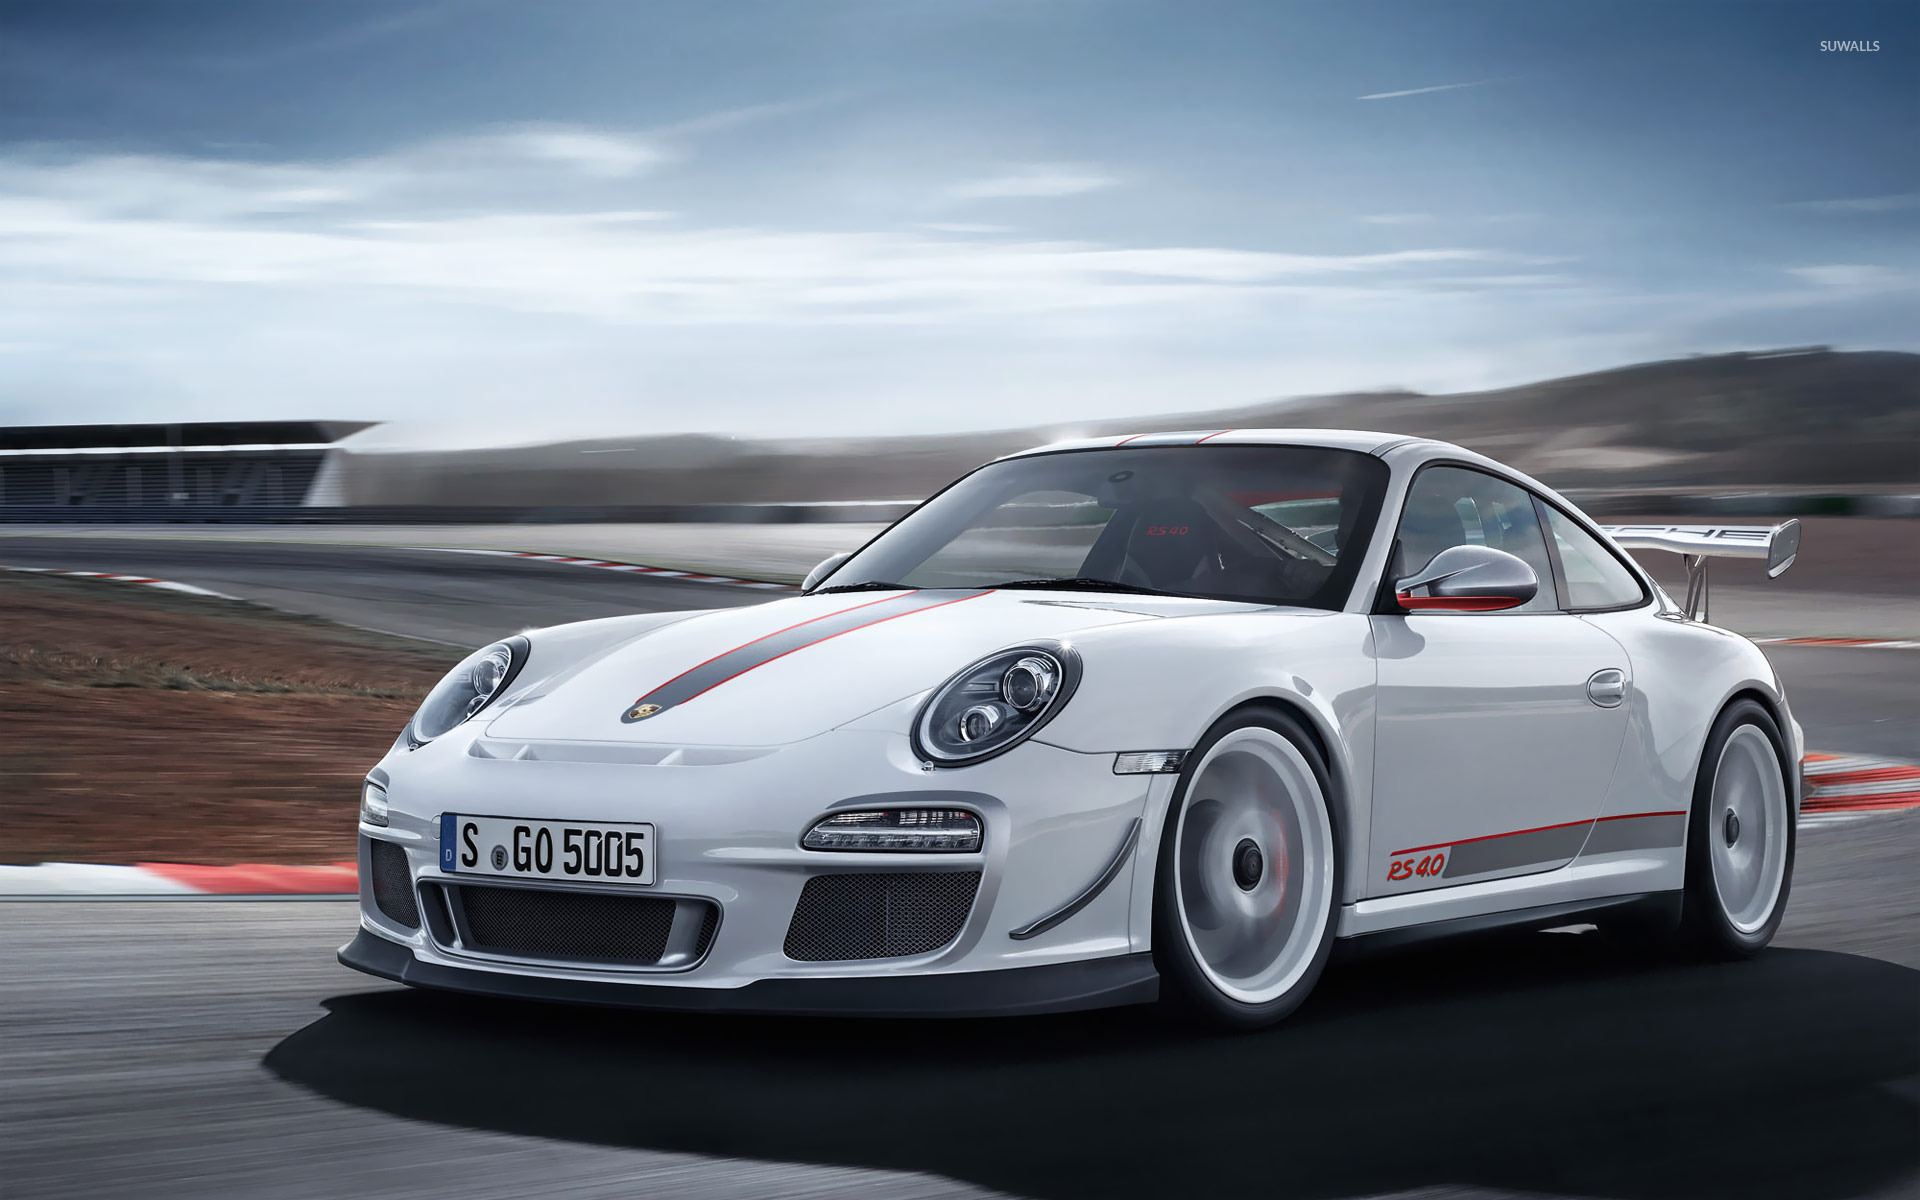 porsche 911 gt3 rs 4 0 wallpaper car wallpapers 19448. Black Bedroom Furniture Sets. Home Design Ideas